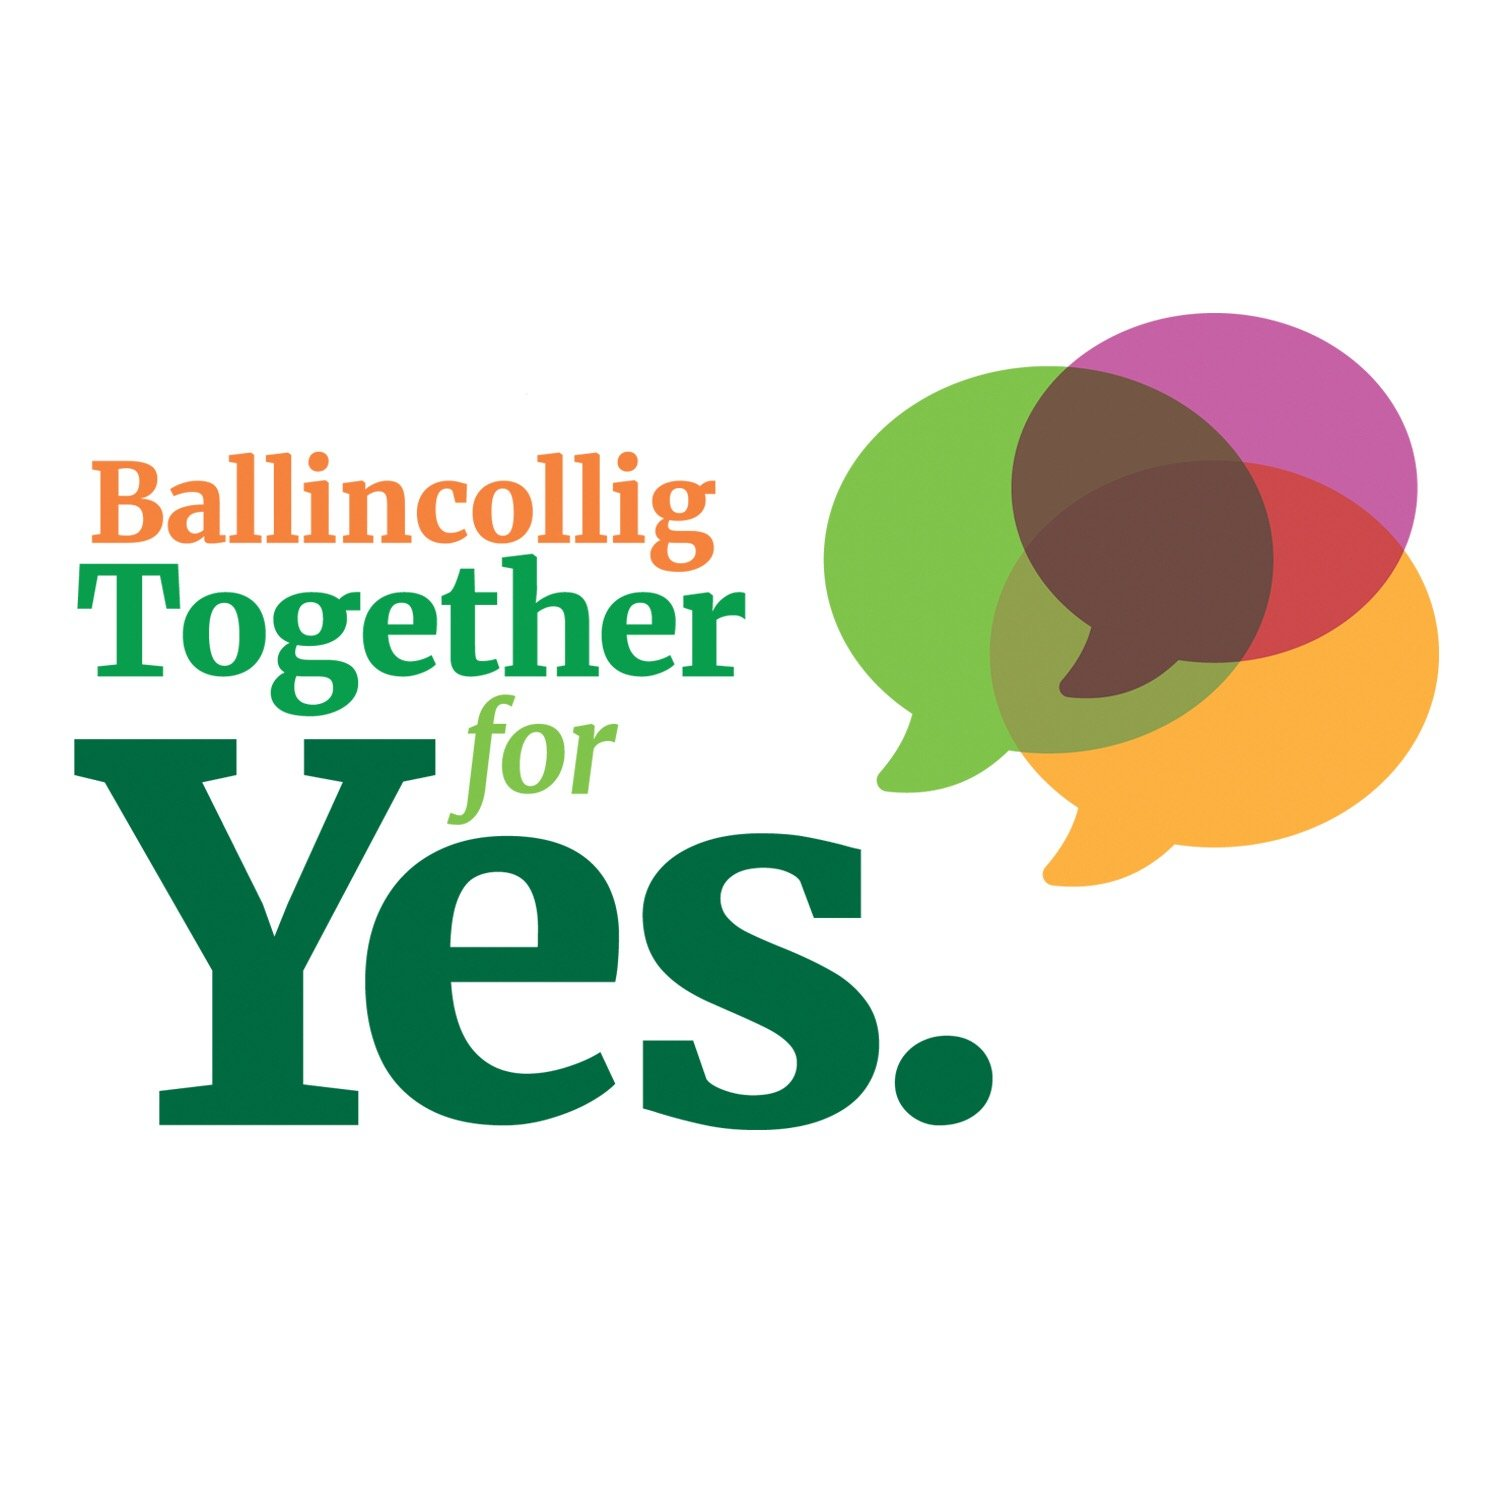 Ballincollig Together for Yes on Twitter: